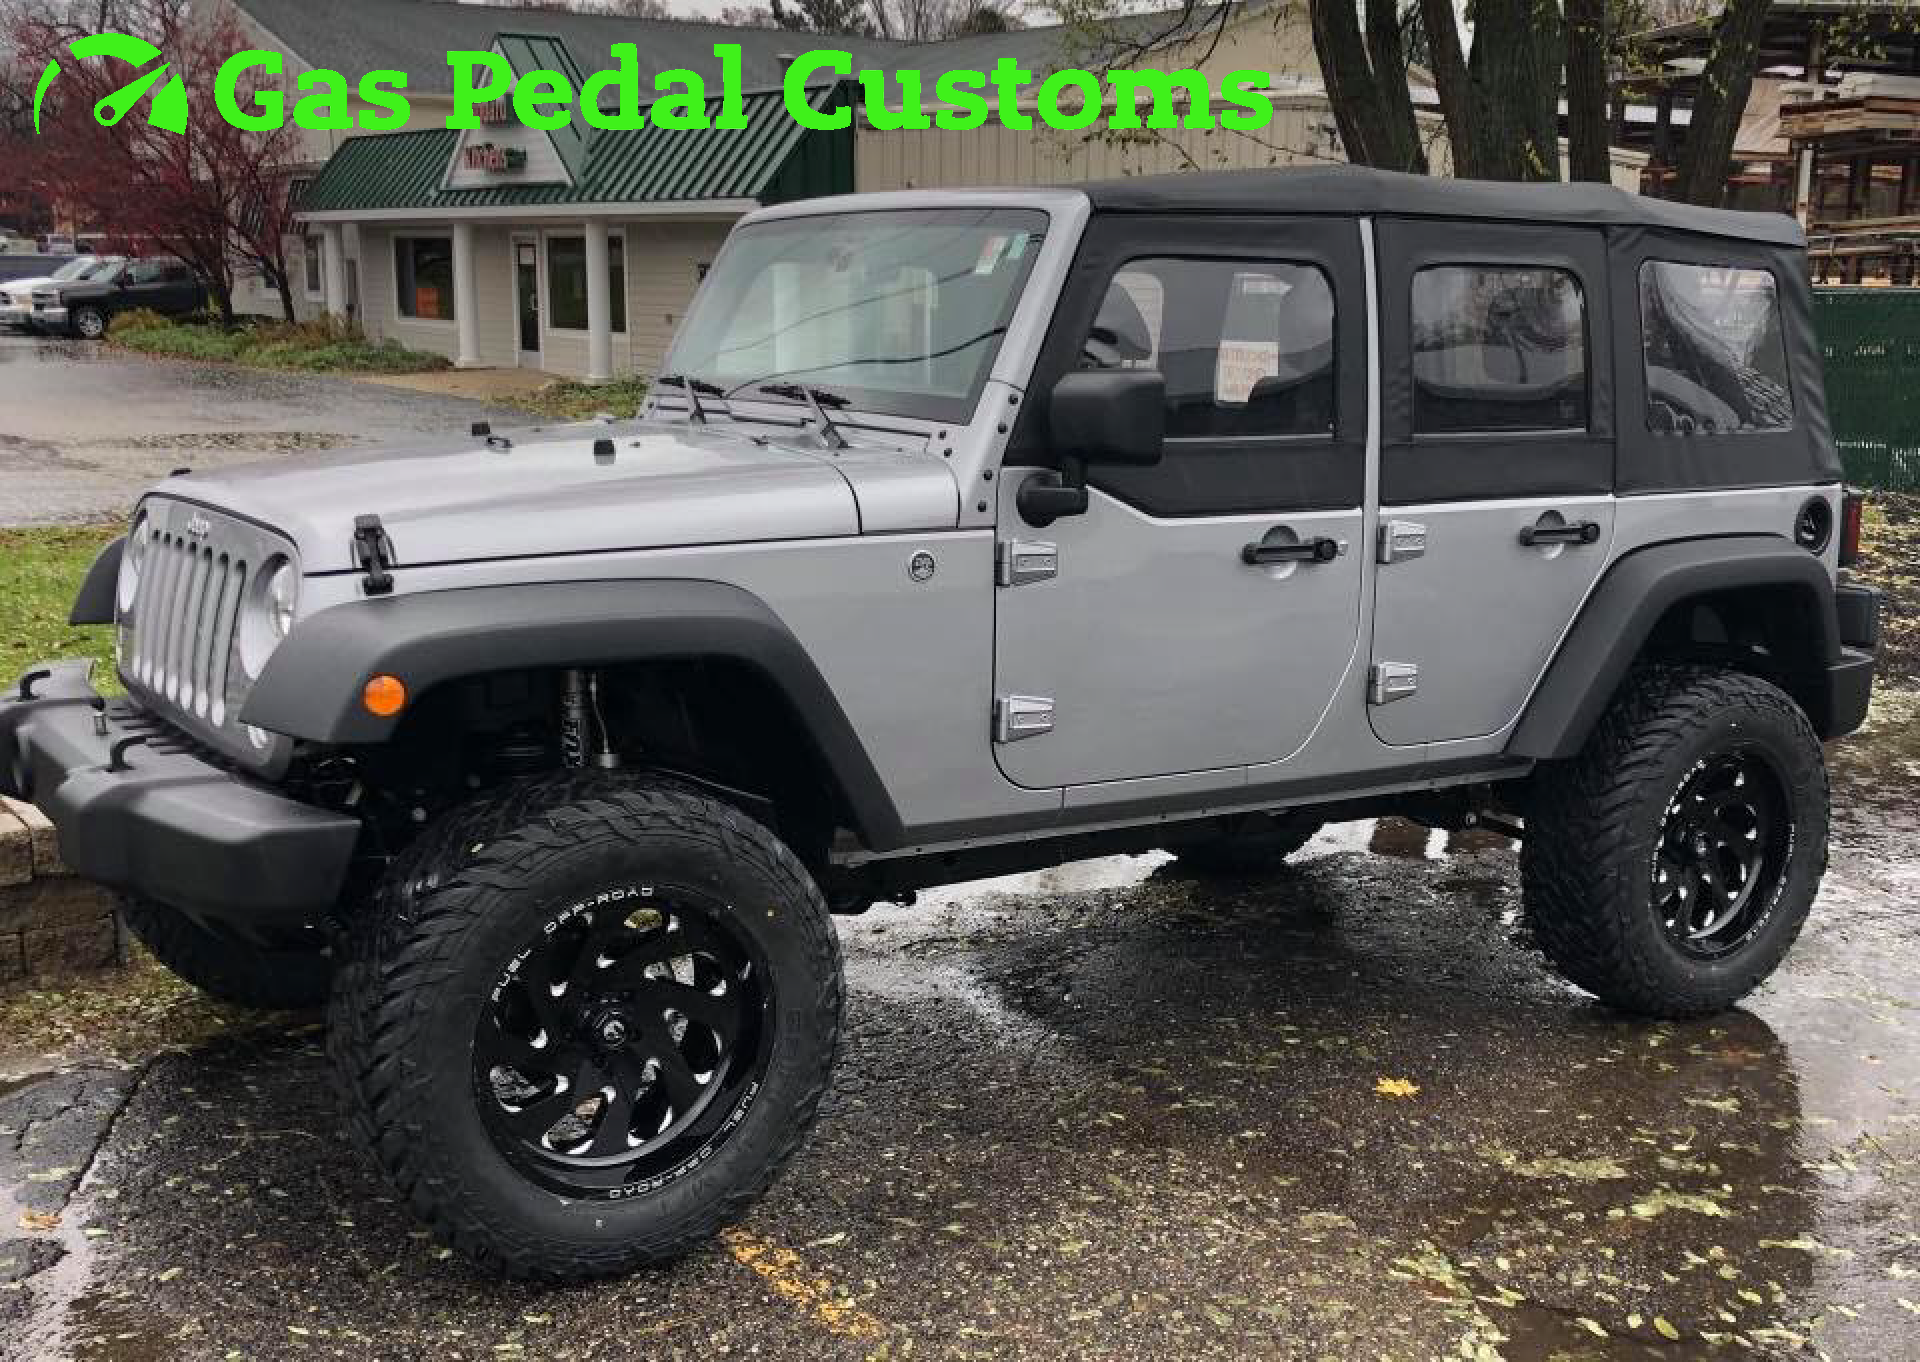 hight resolution of jeep wrangler with jks suspension fuel offroad wheels fox shocks and fuel tires gas pedal customs jeeps hemi jeep conversions customs jeeps jeep